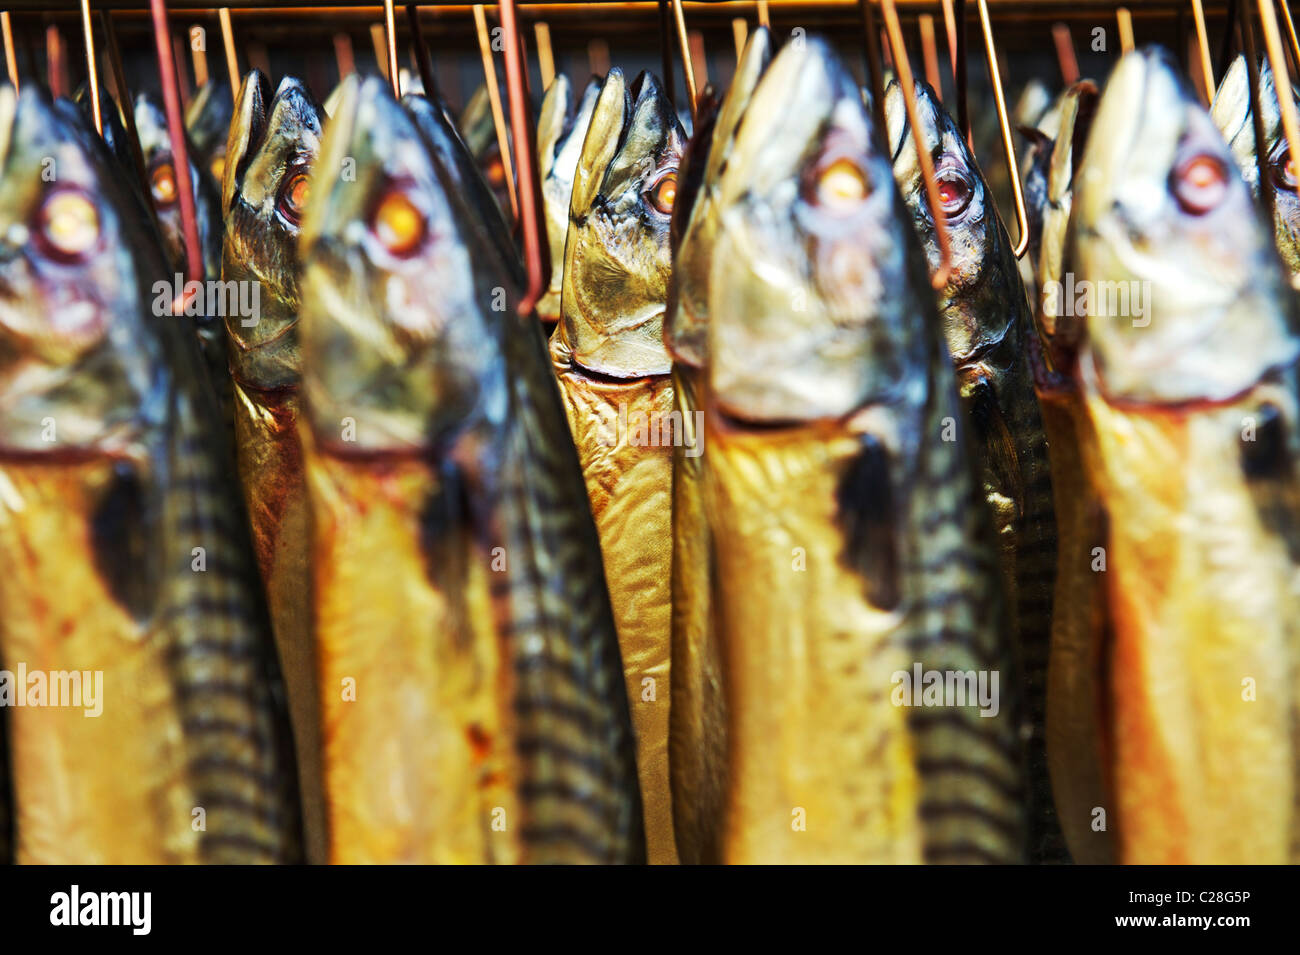 smoked kippers hanging in a smokehouse in Suffolk - Stock Image